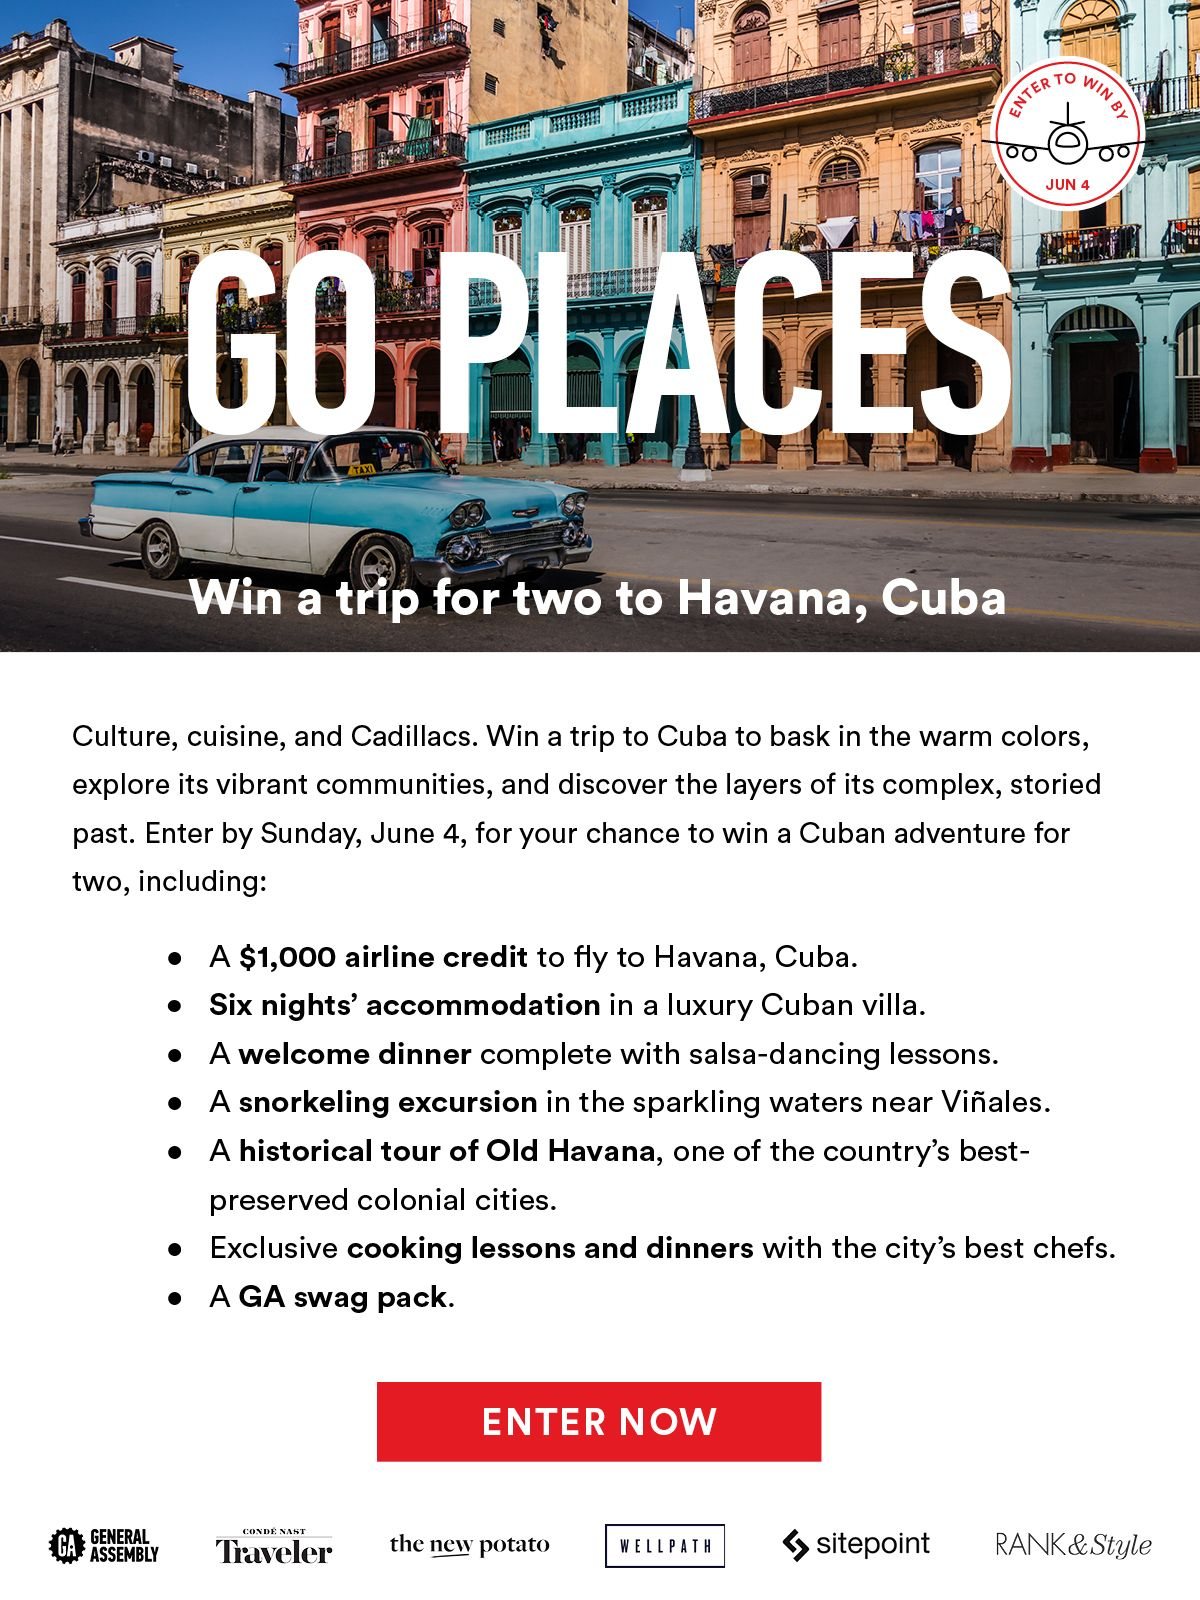 Win a trip for two to Havana, Cuba